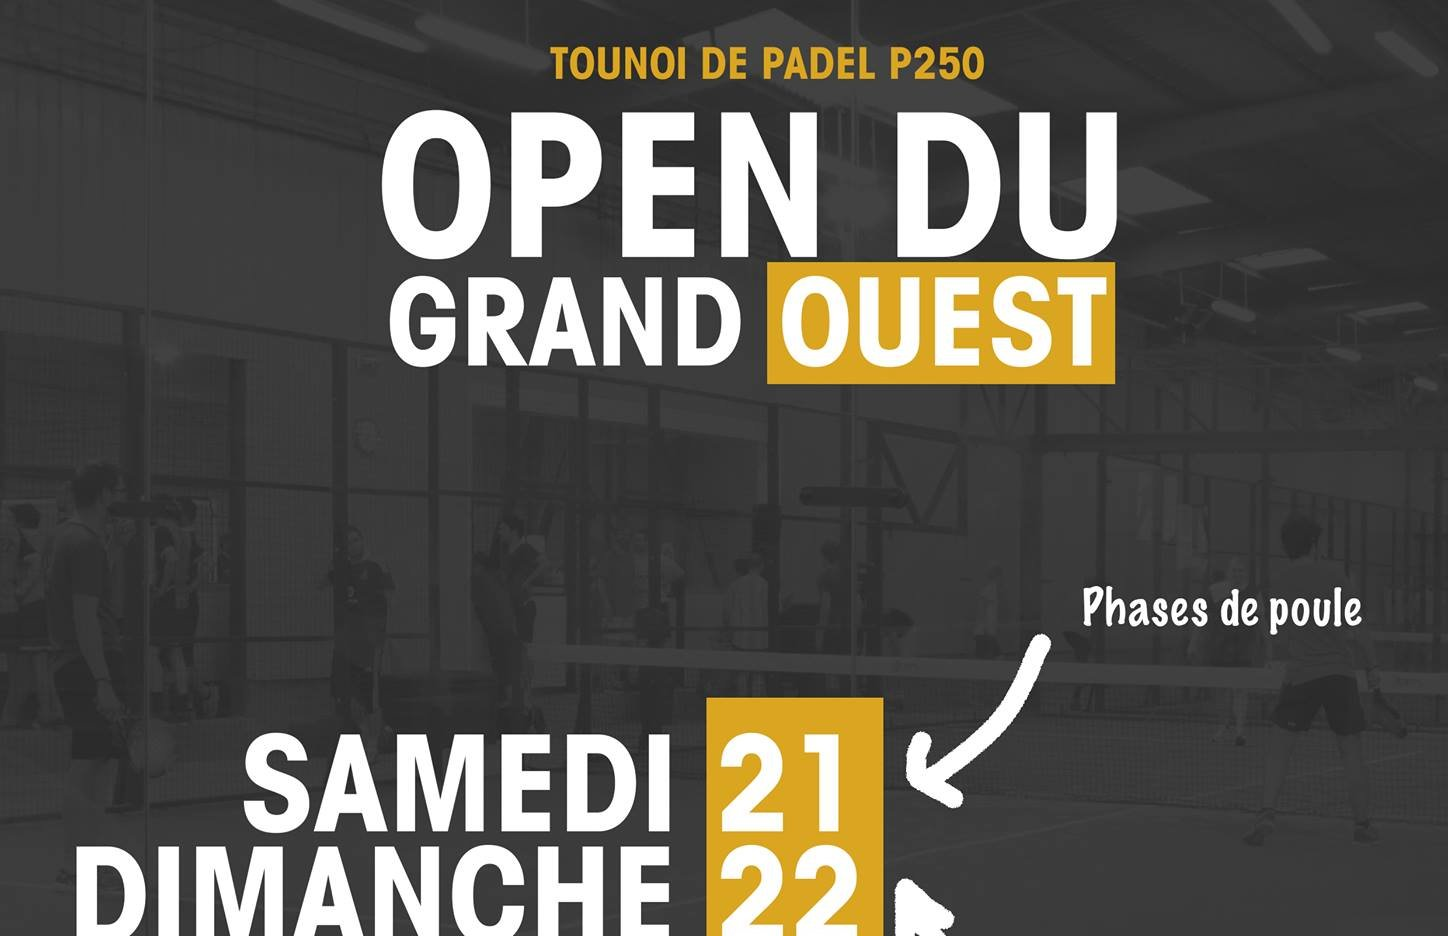 The Open padel of the Great West ready!